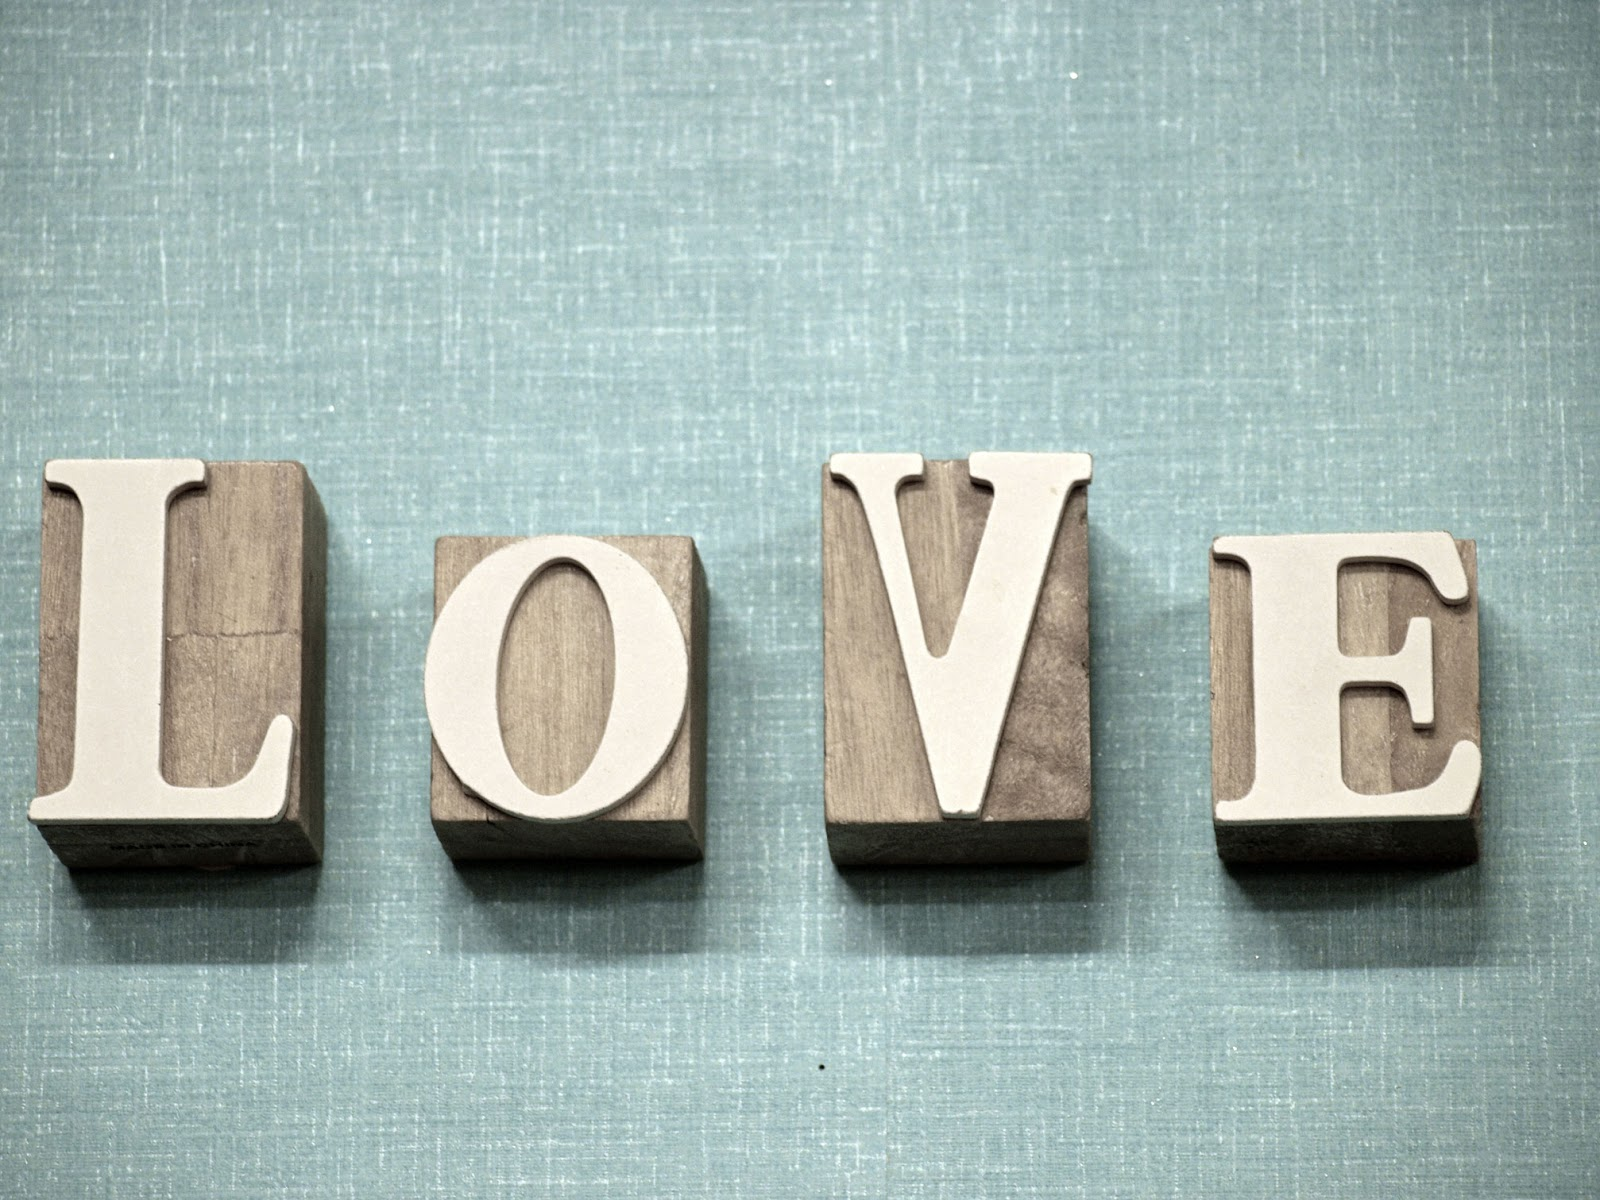 The word love spelled out in wooden blocks